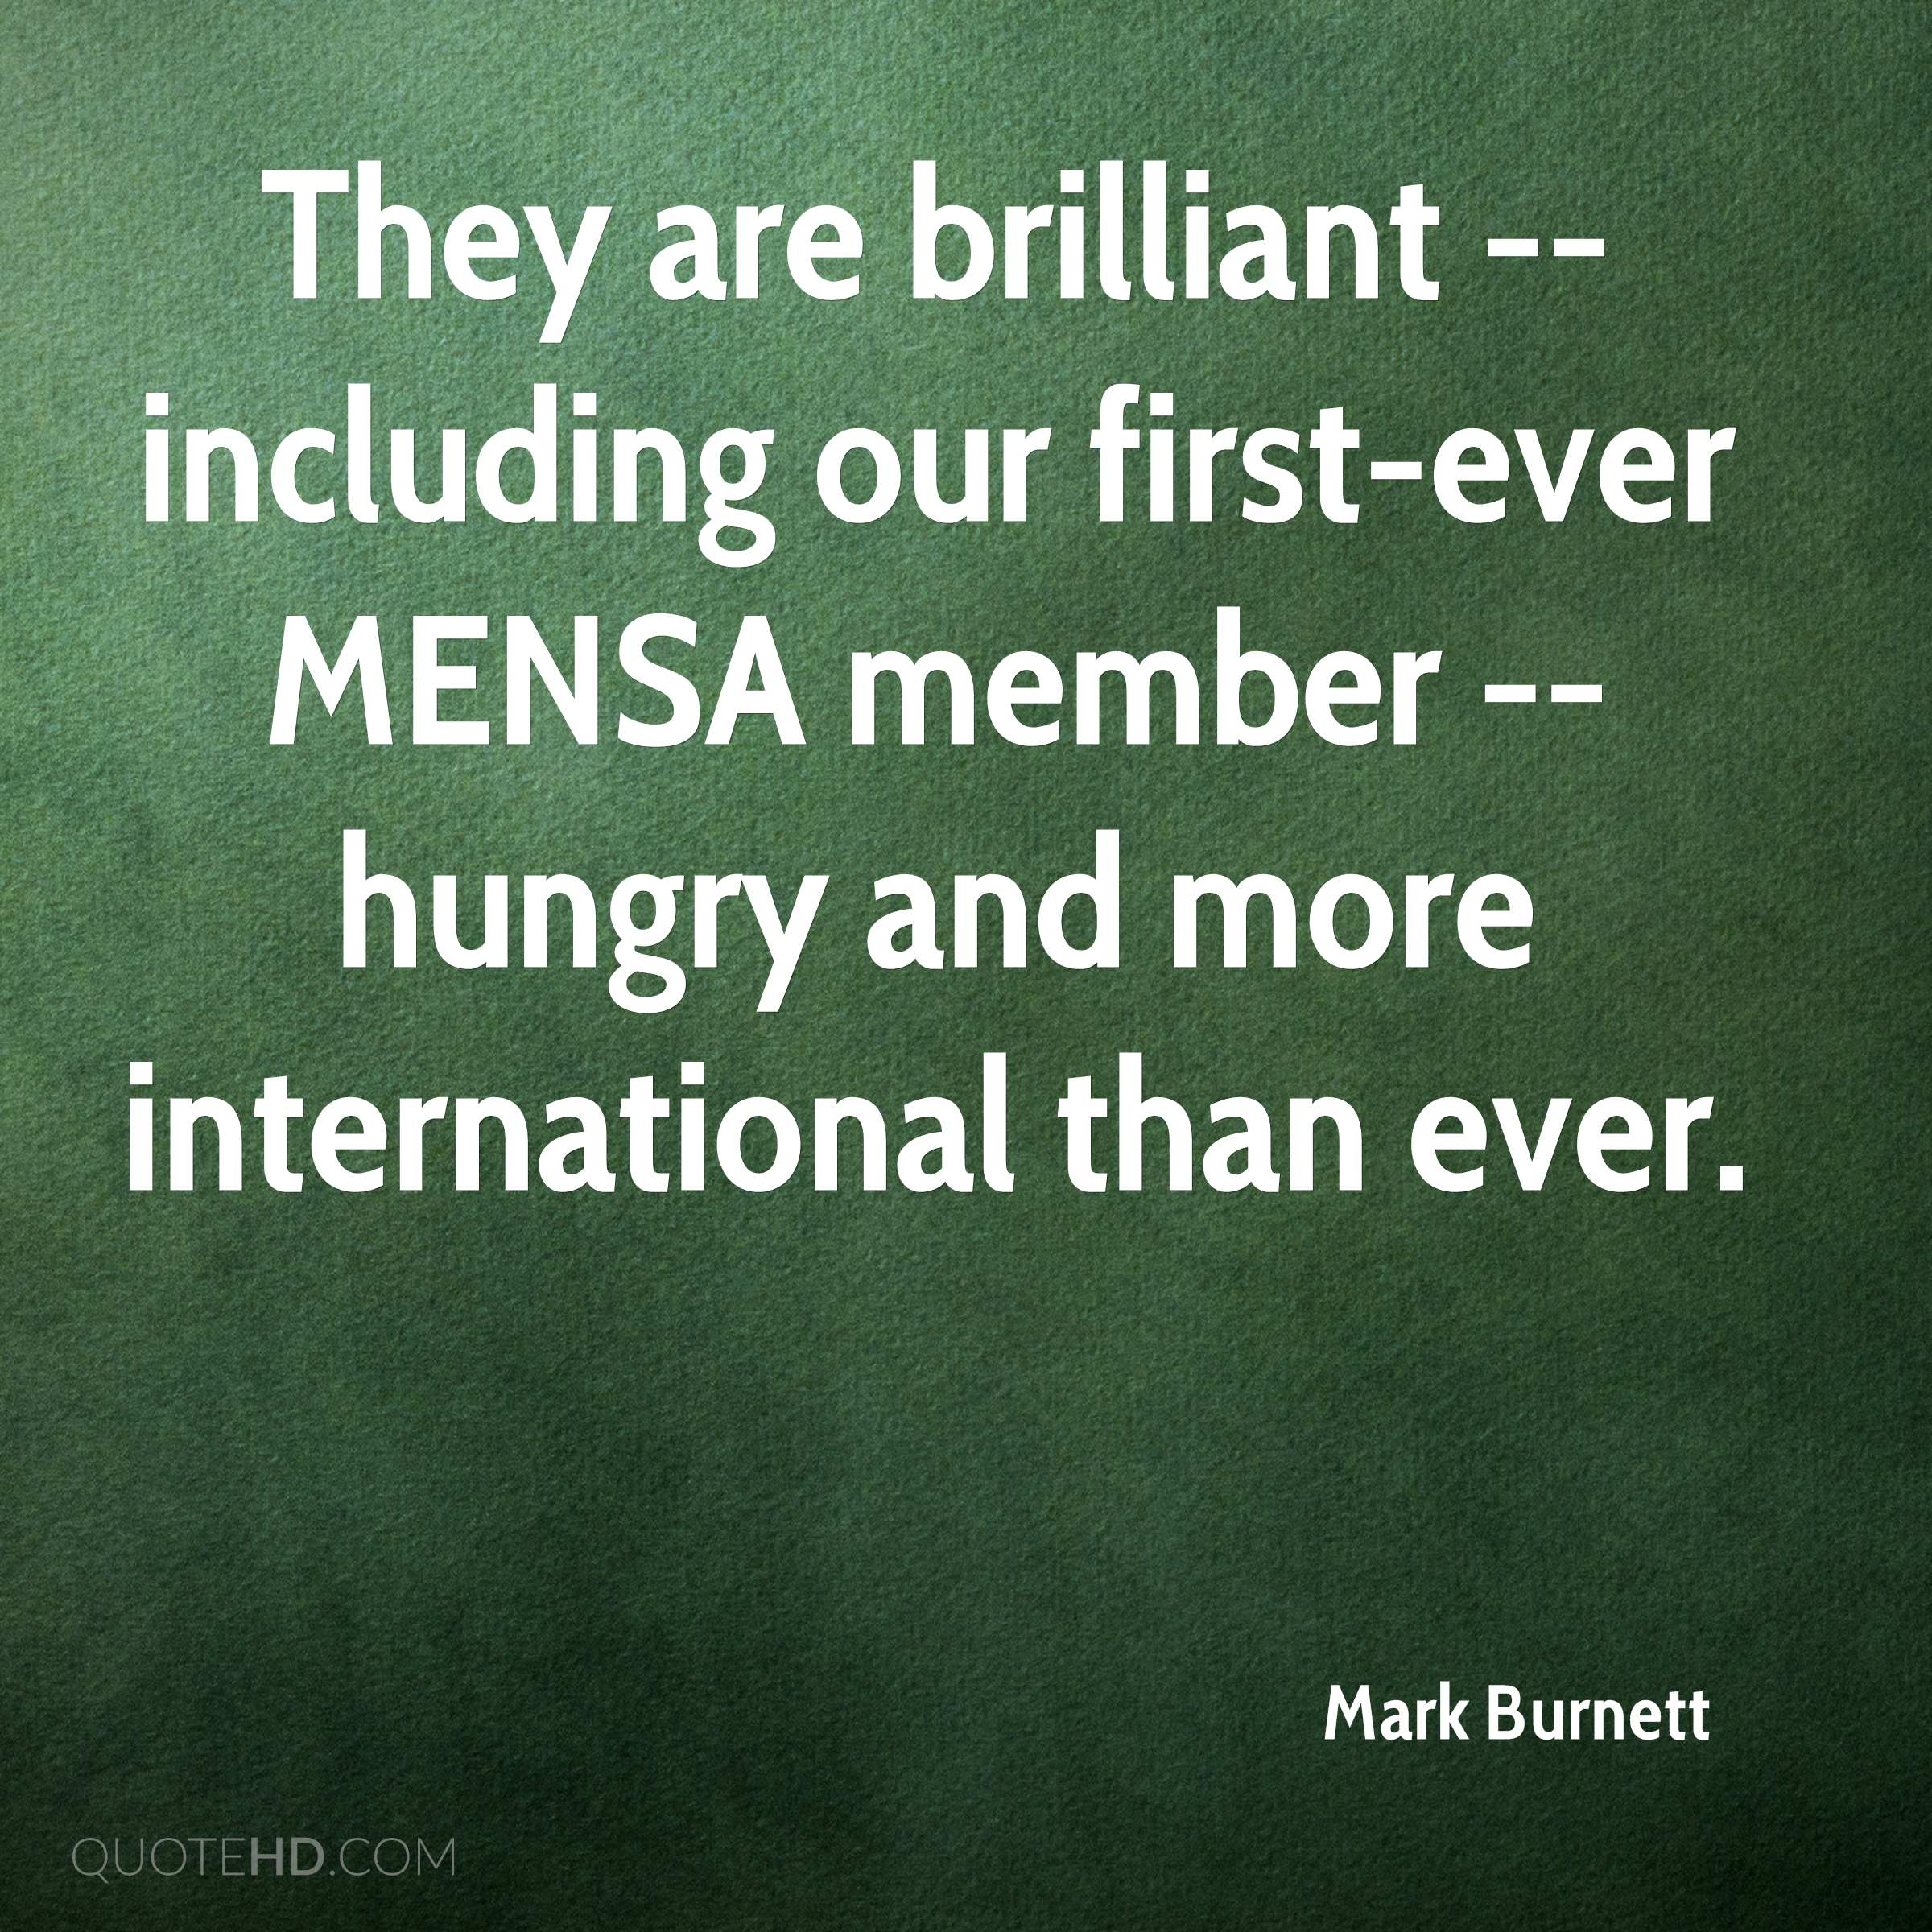 They are brilliant -- including our first-ever MENSA member -- hungry and more international than ever.